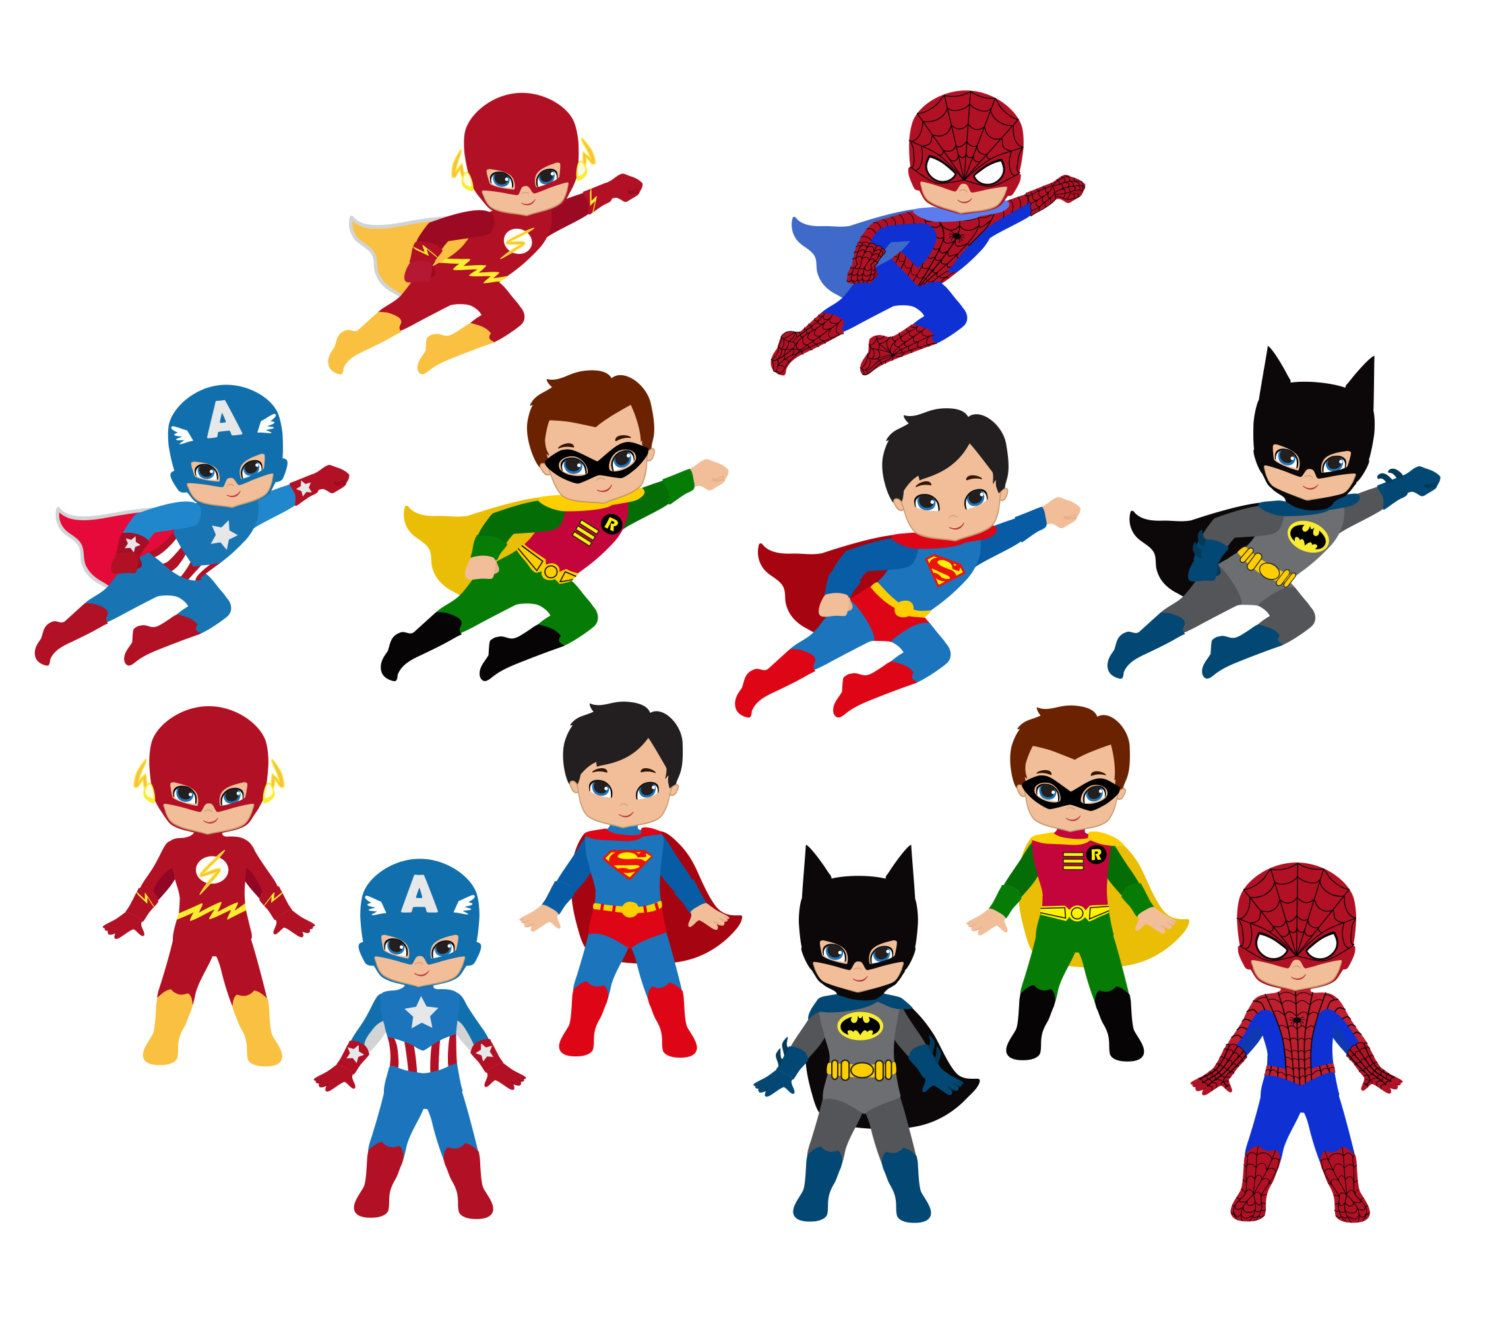 free superhero clipart fonts clipart freebies pinterest rh pinterest com free superhero clip art black and white free superhero clip art black and white